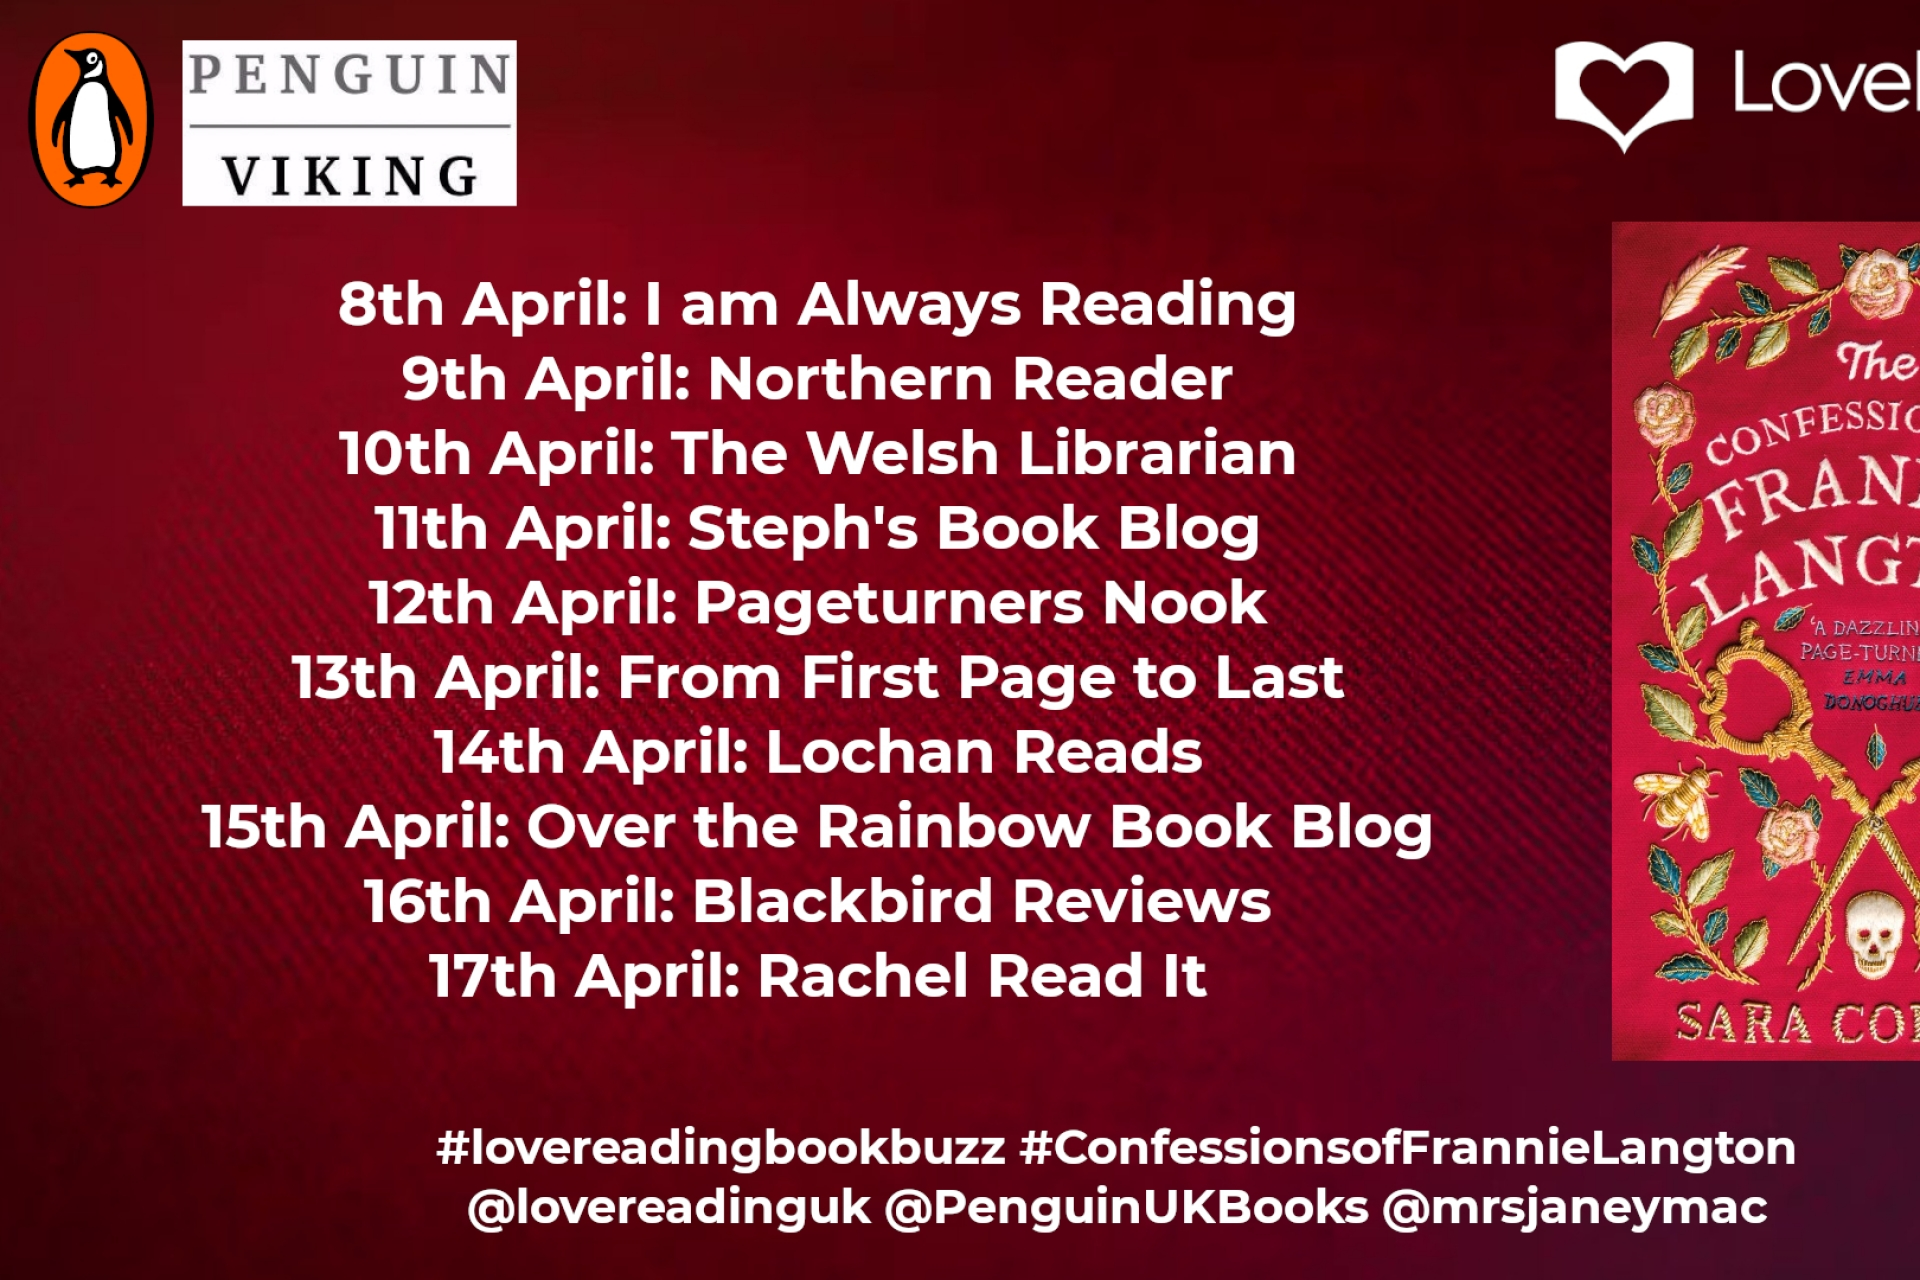 Ambassador Book Buzz: The Confessions of Frannie Langton